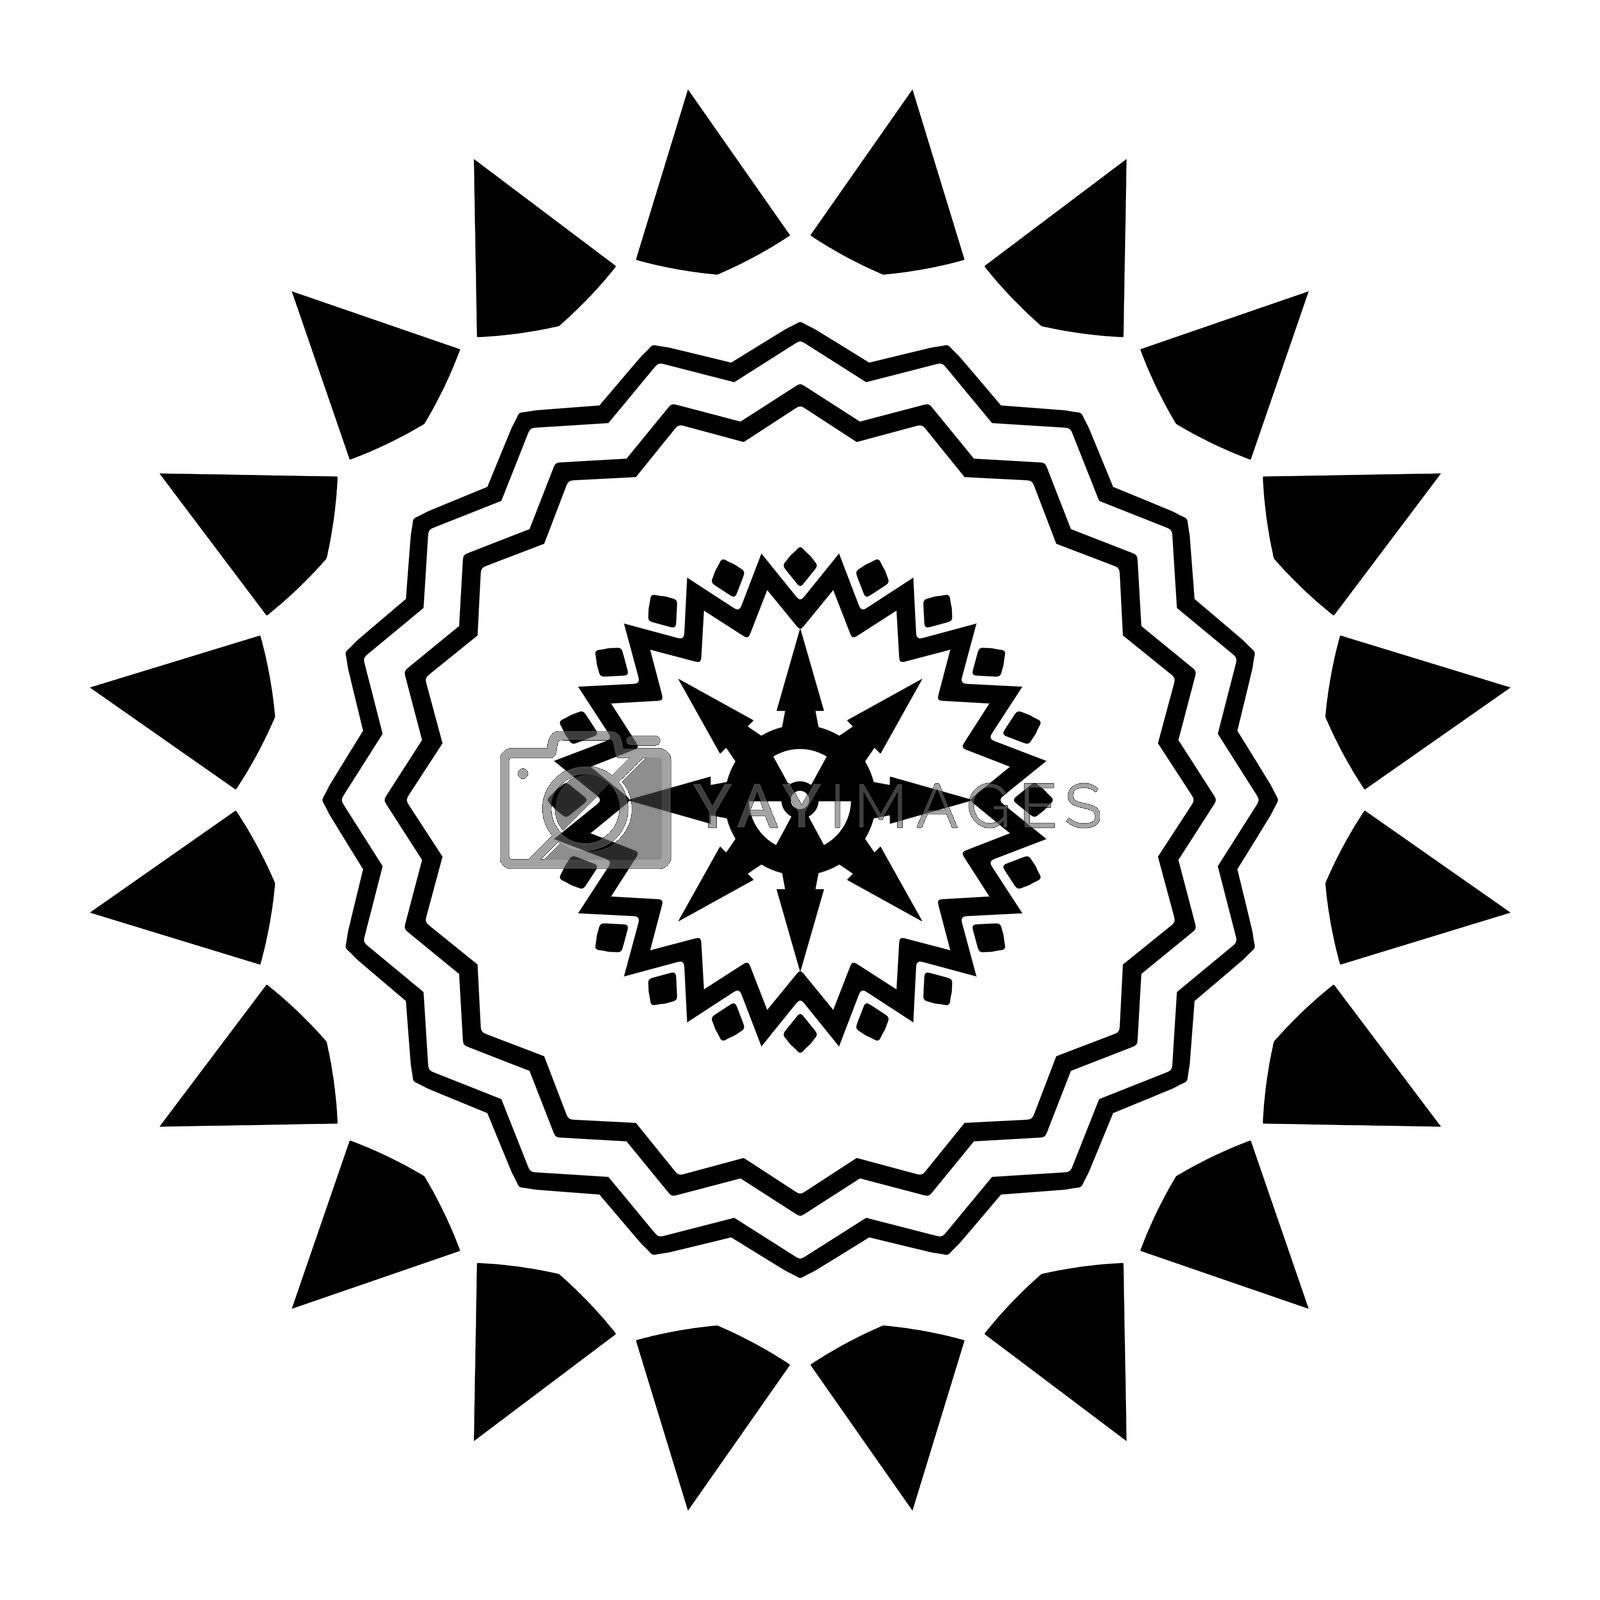 Illustrated black and white design with a radiation symbol in the middle